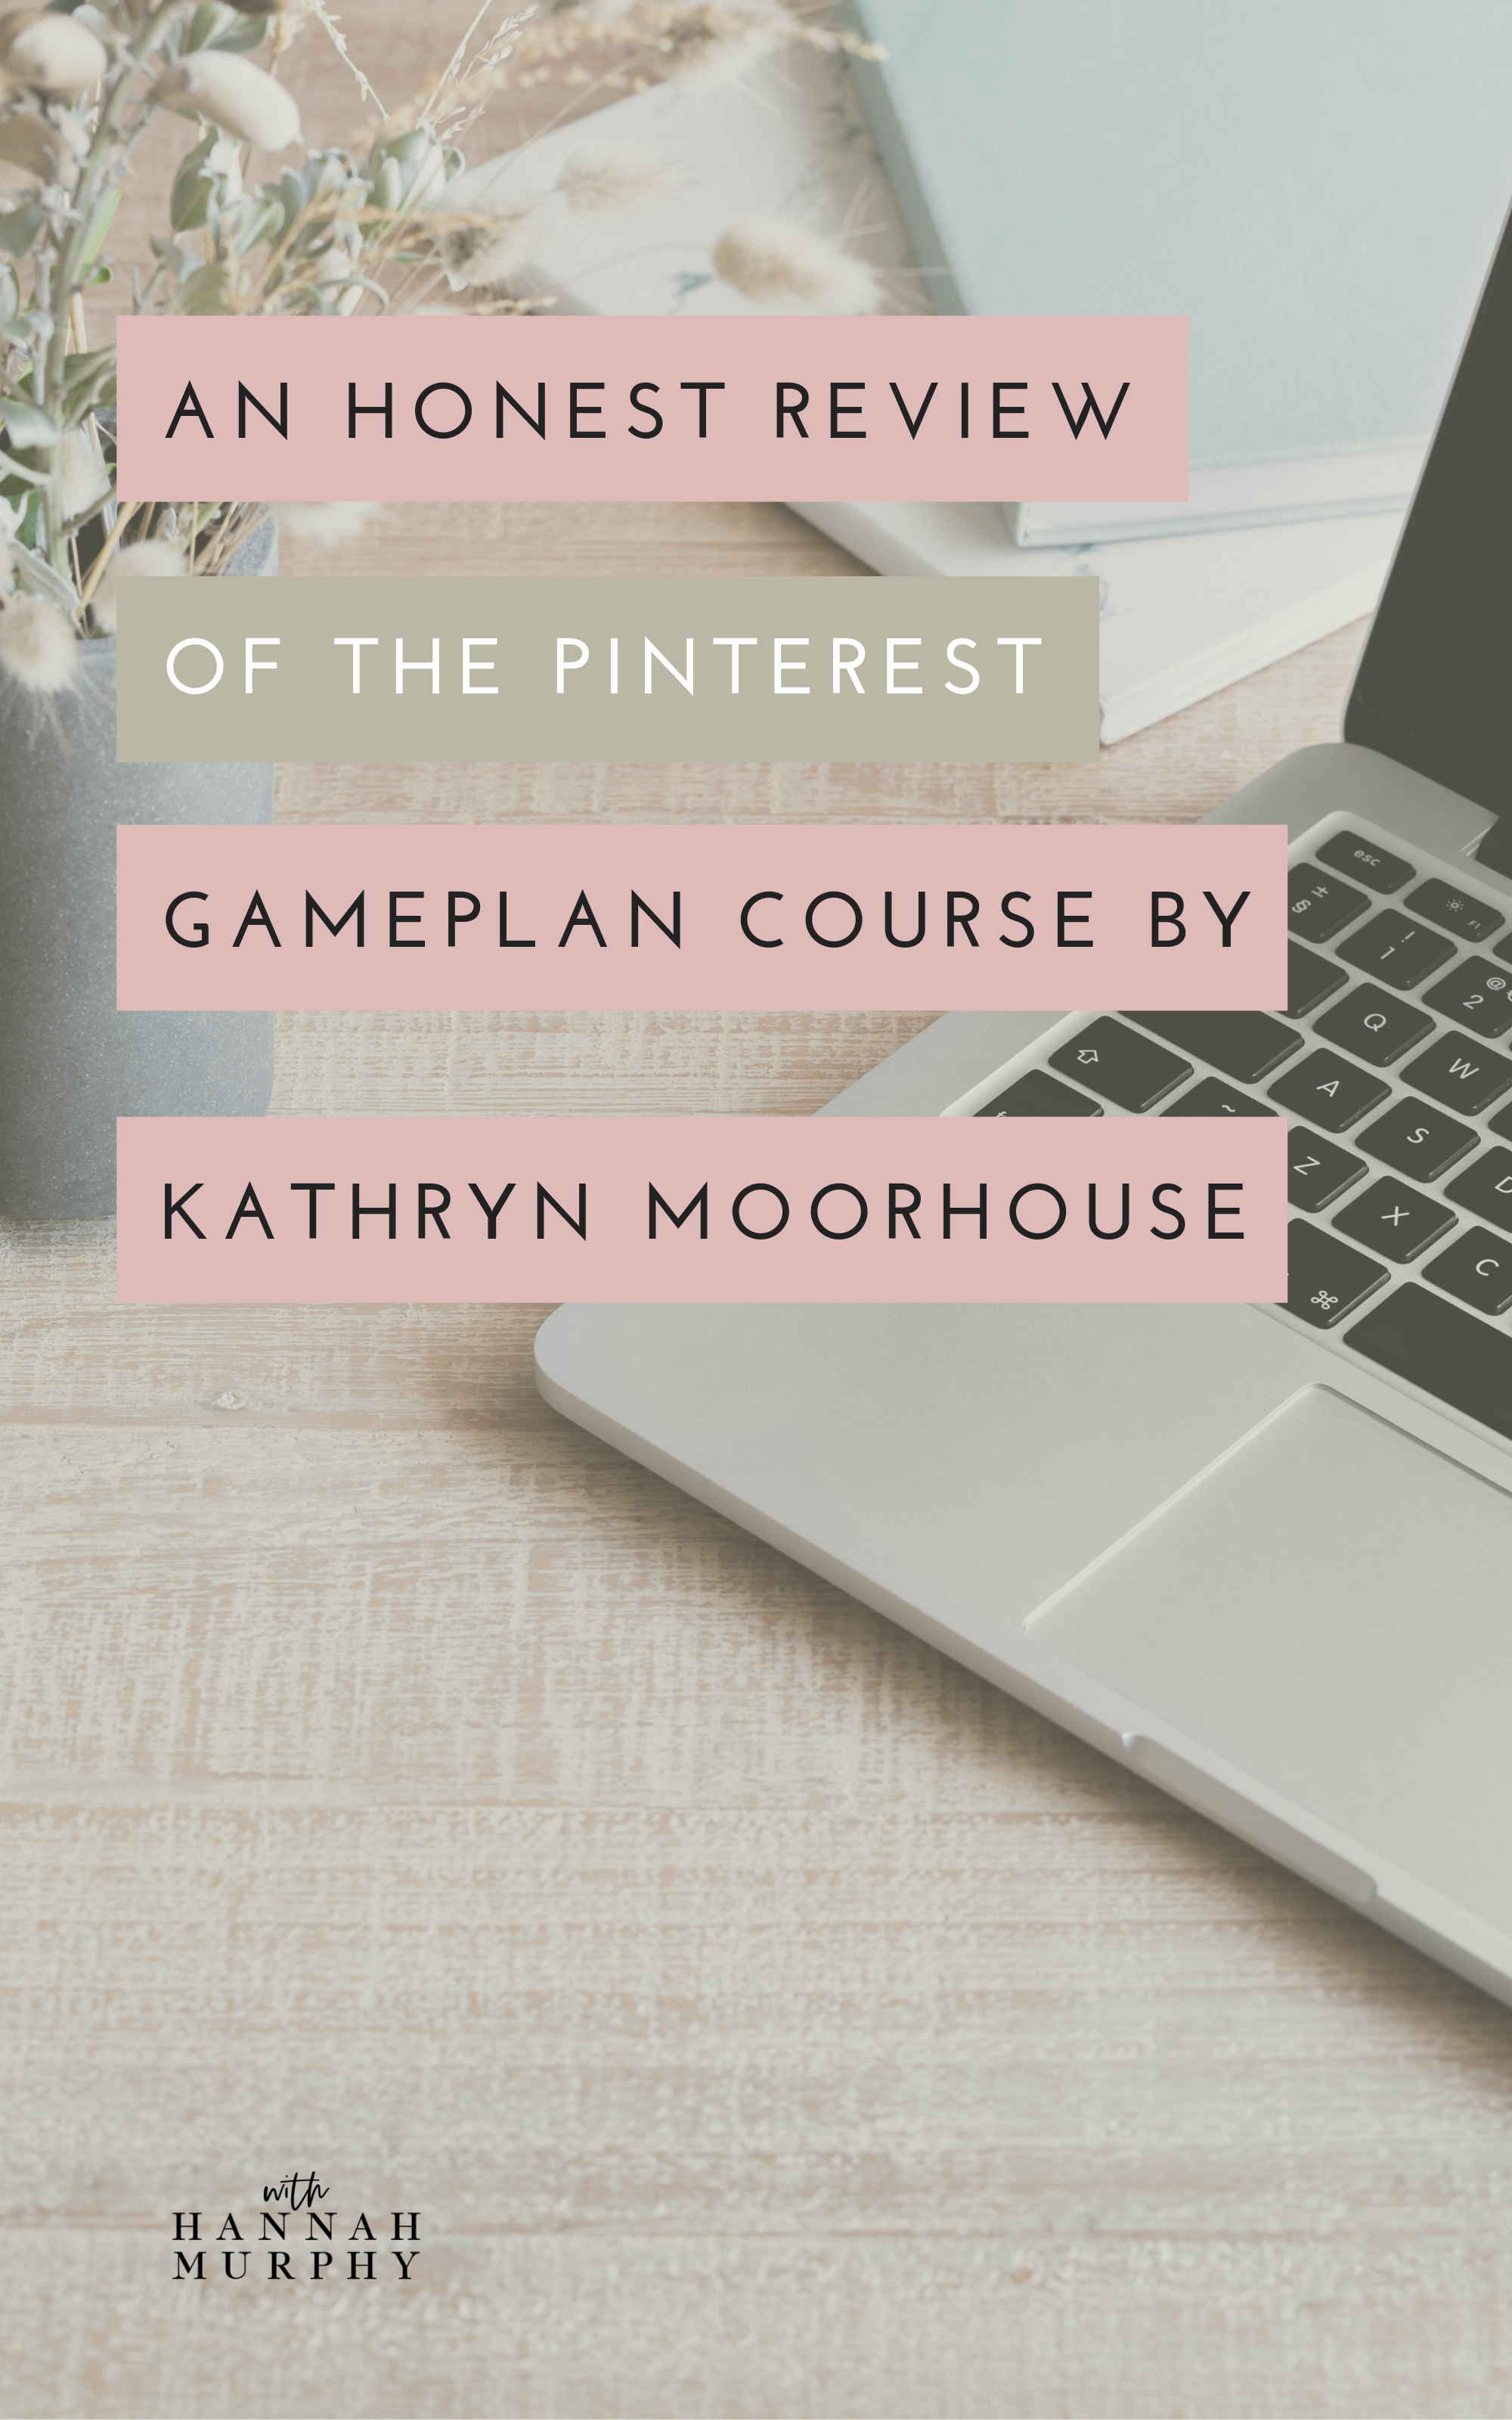 Want to up level your Pinterest account? Want to see your business do well on Pinterest? This blog post provides an honest review on Kathryn Moorhouse's course 'The Pinterest Gameplan' #pinterest #pinterestmarketing #pinterestcourse